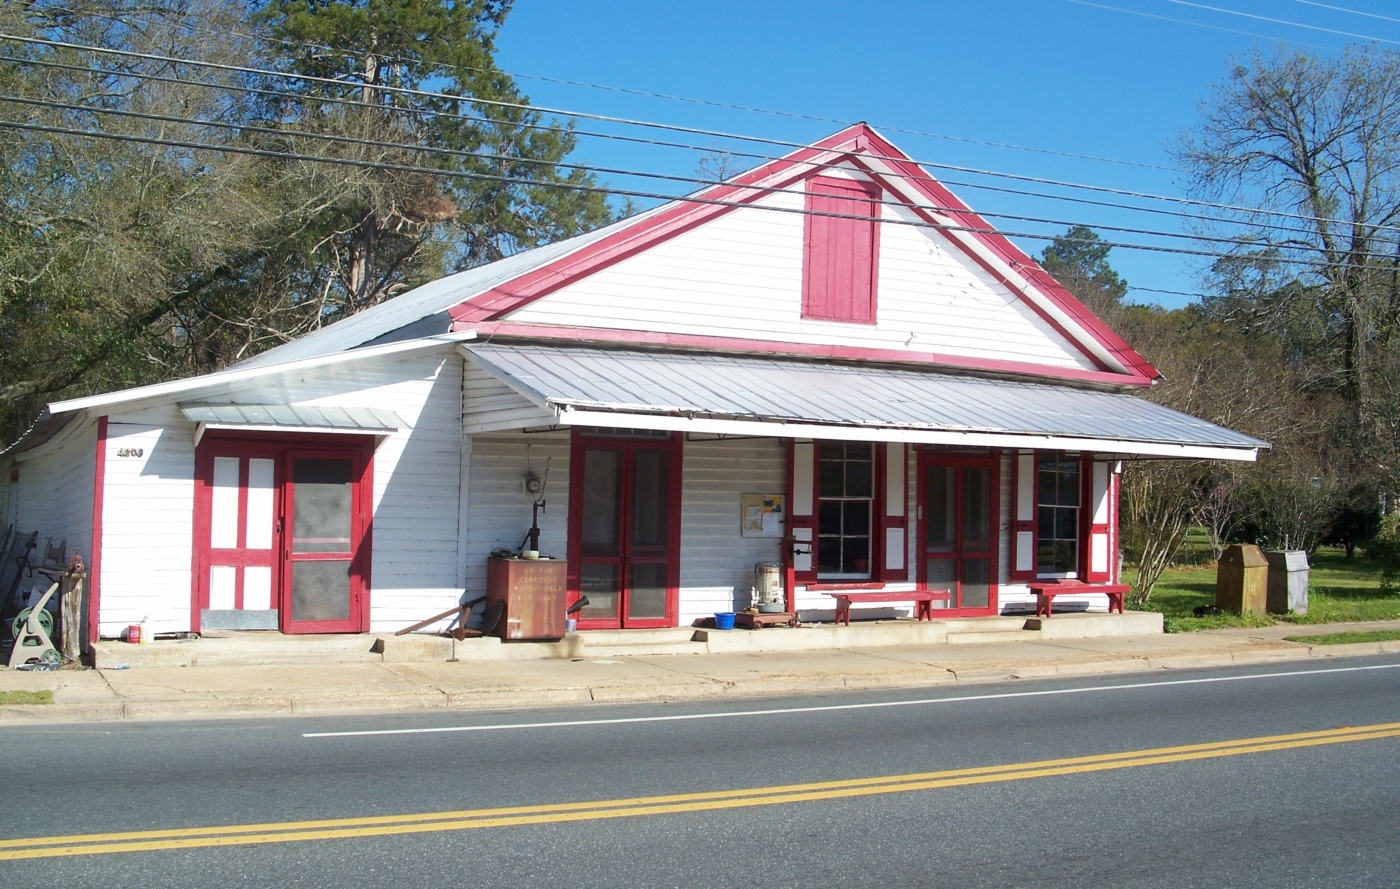 The front of Pender's Store from the road.